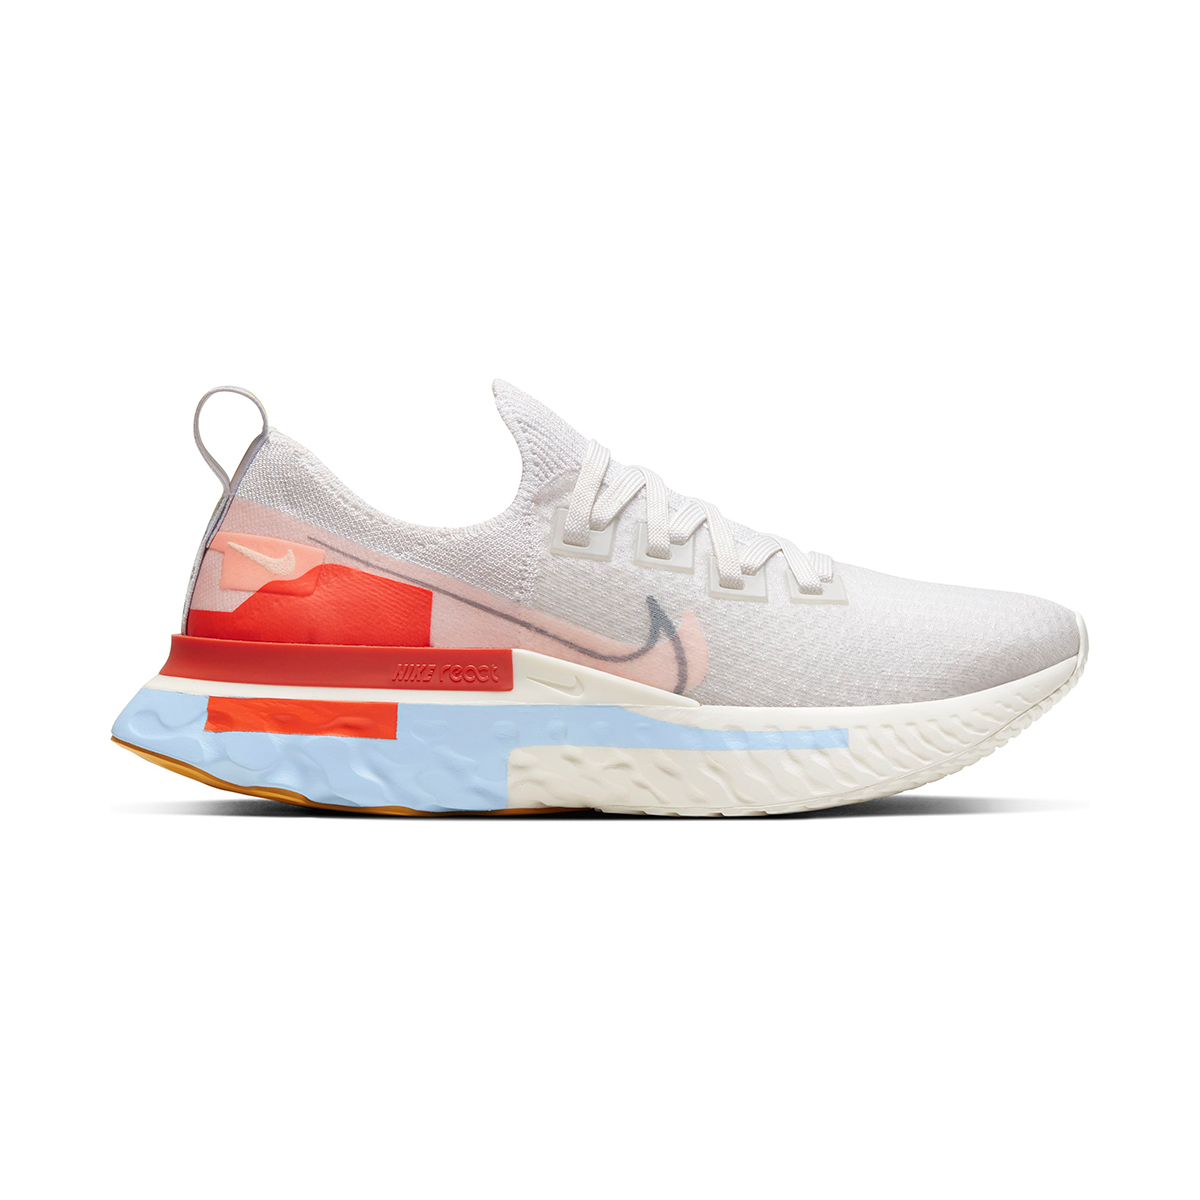 Women's Nike React Infinity Run Flyknit Running Shoe - Color: Platinum Tint/Washed Coral - Size: 5 - Width: Regular, Platinum Tint/Washed Coral, large, image 1